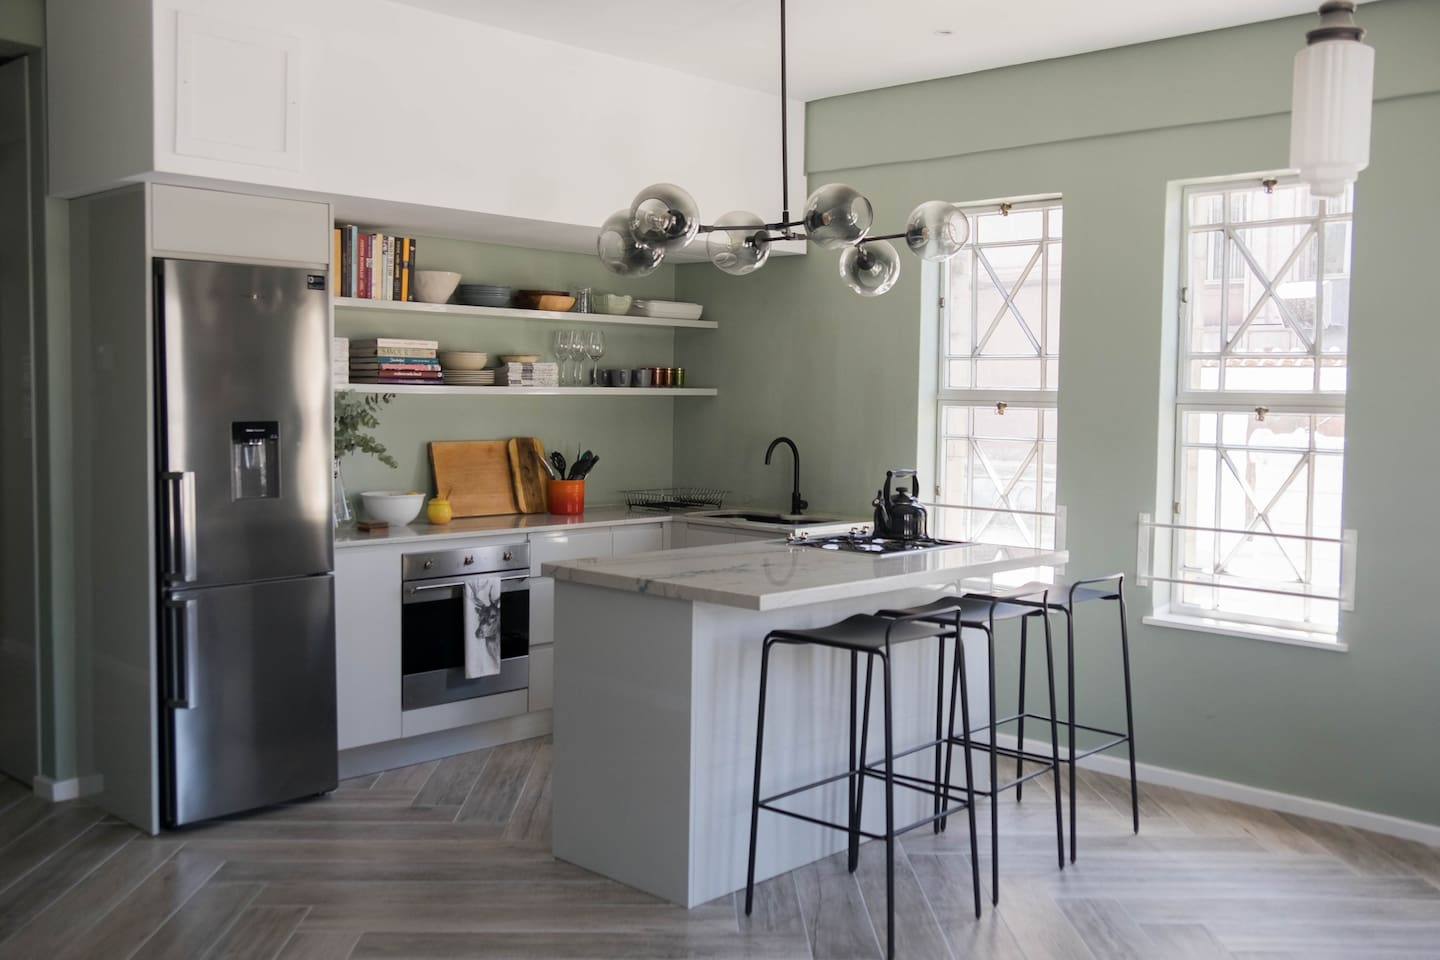 The galley kitchen, with its large island is perfect for cooking, entertaining or just hanging out after a day spent exploring Cape Town